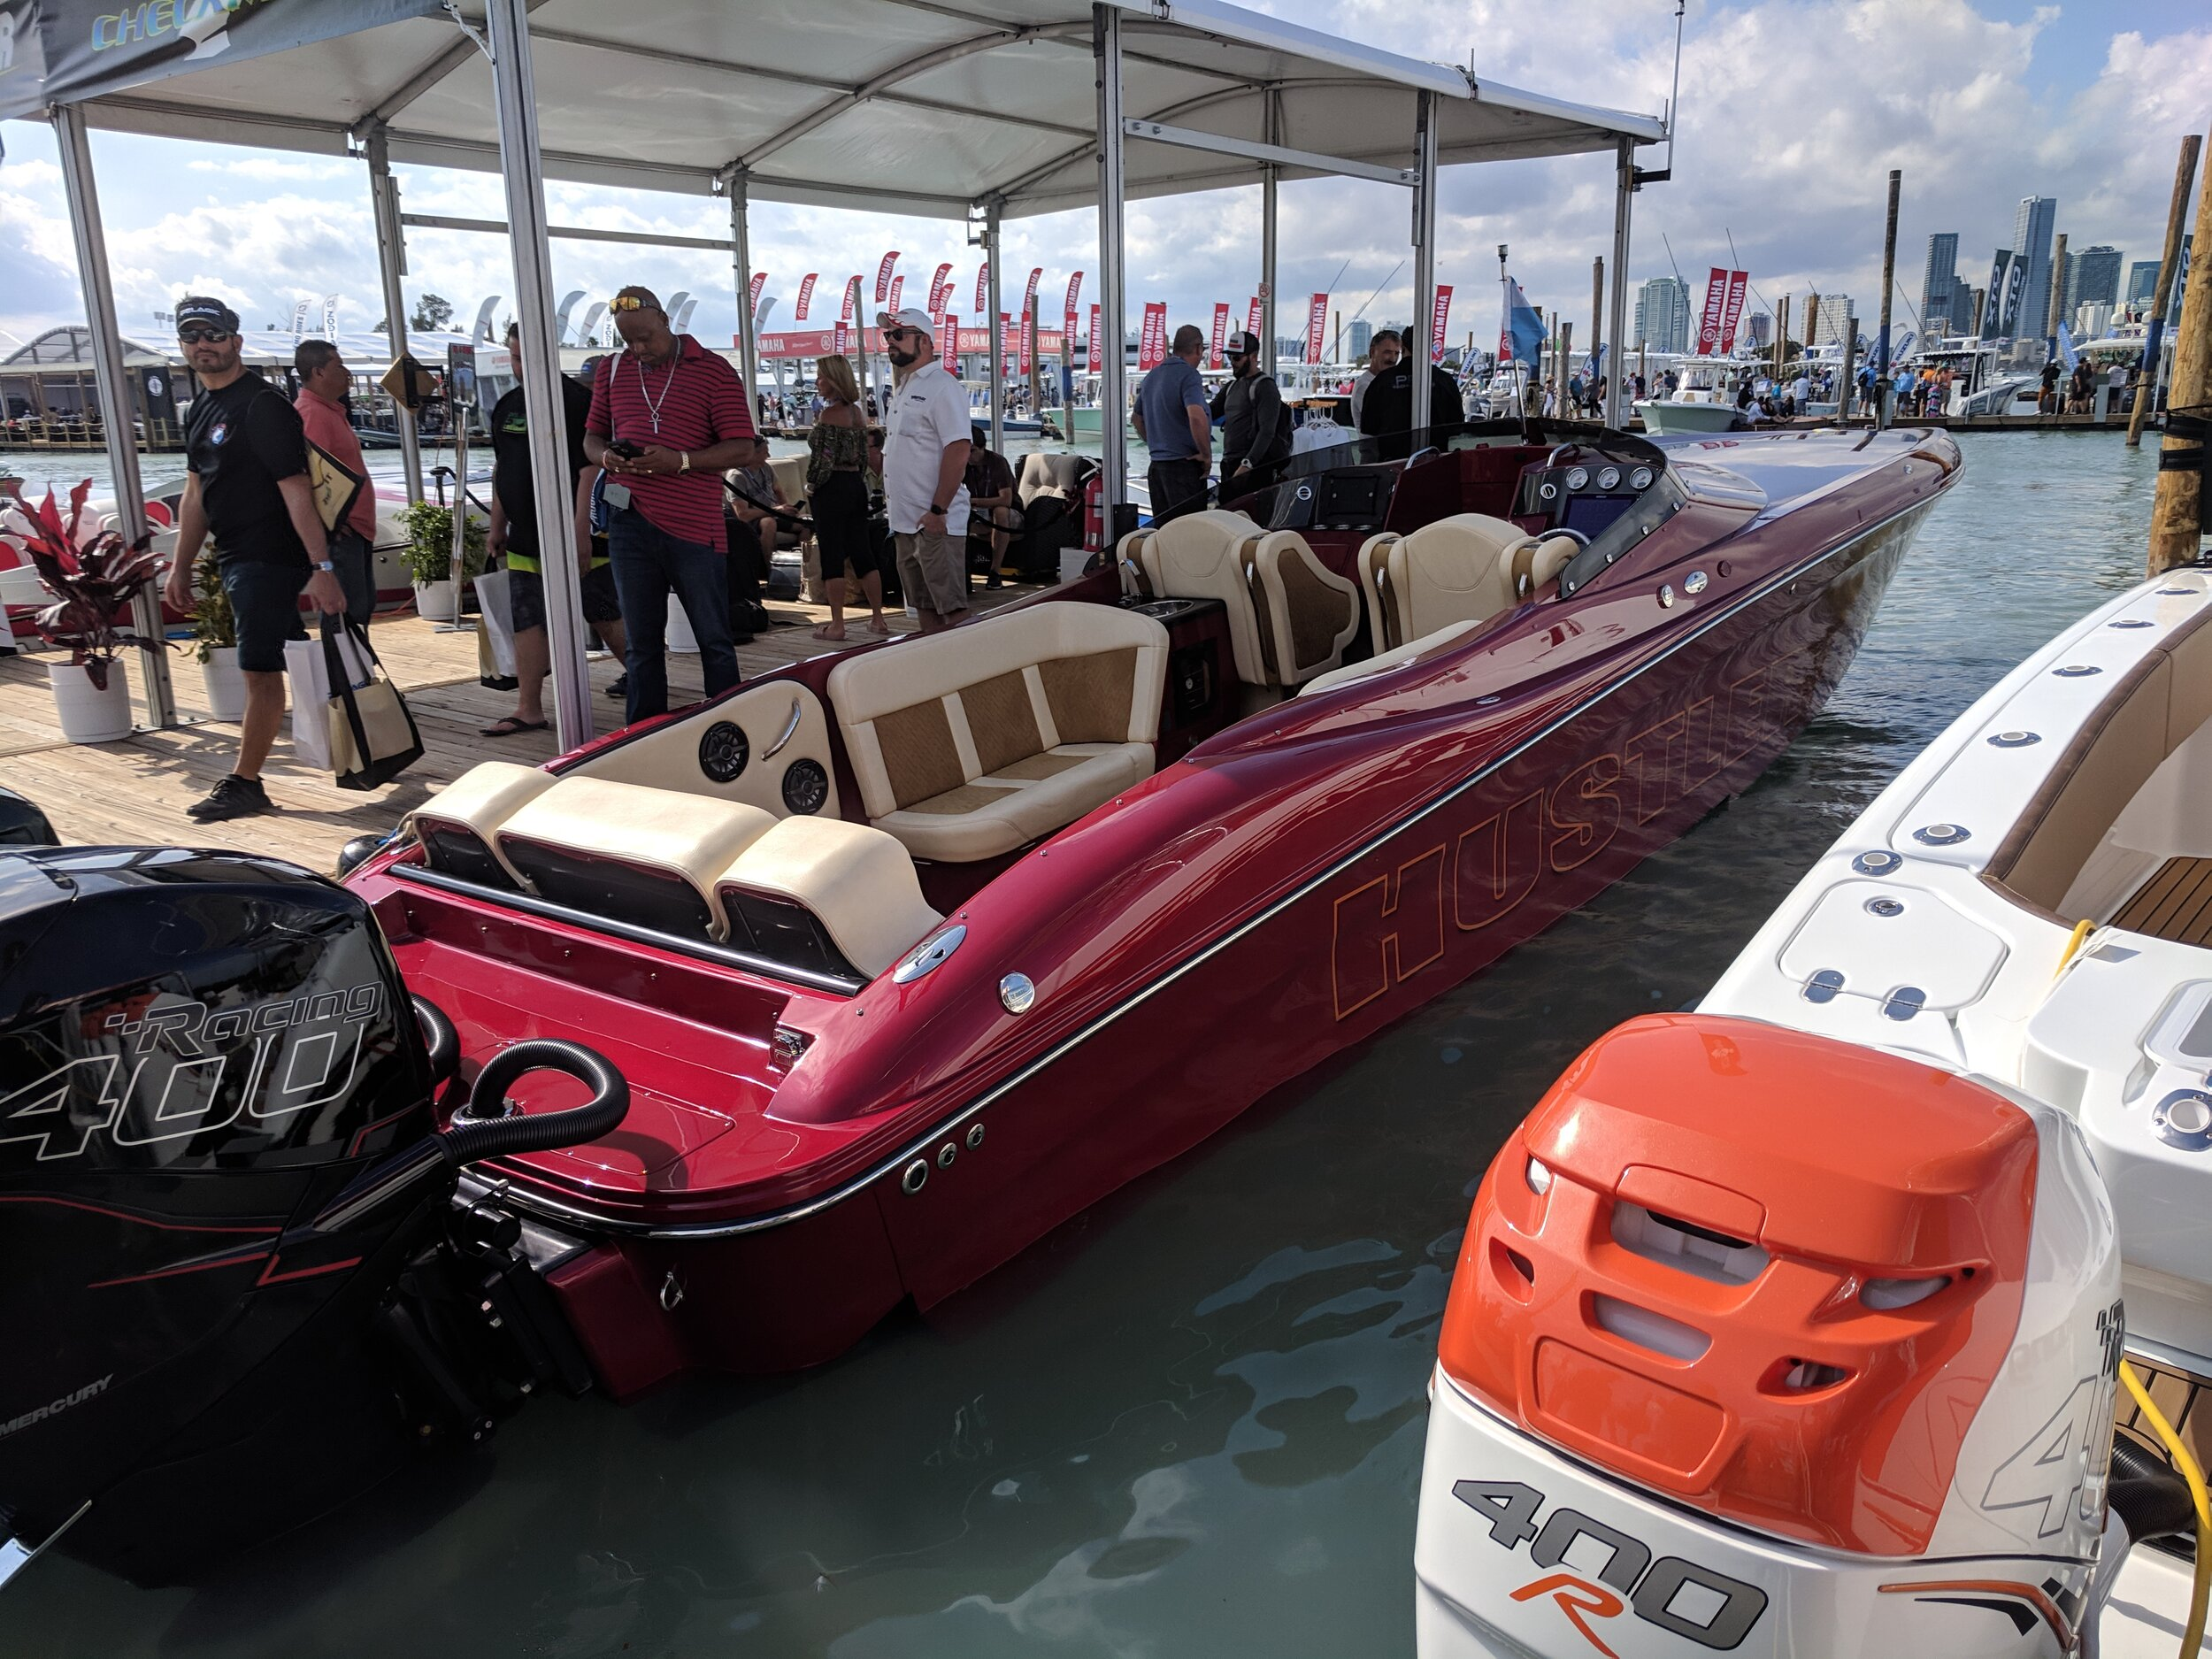 The Hustler 39' Shotgun and their new 29' Rockit outboard coming to market, the New York custom builder sees where the market is going. And, they are getting creative with the interior. Lots of room for activities.